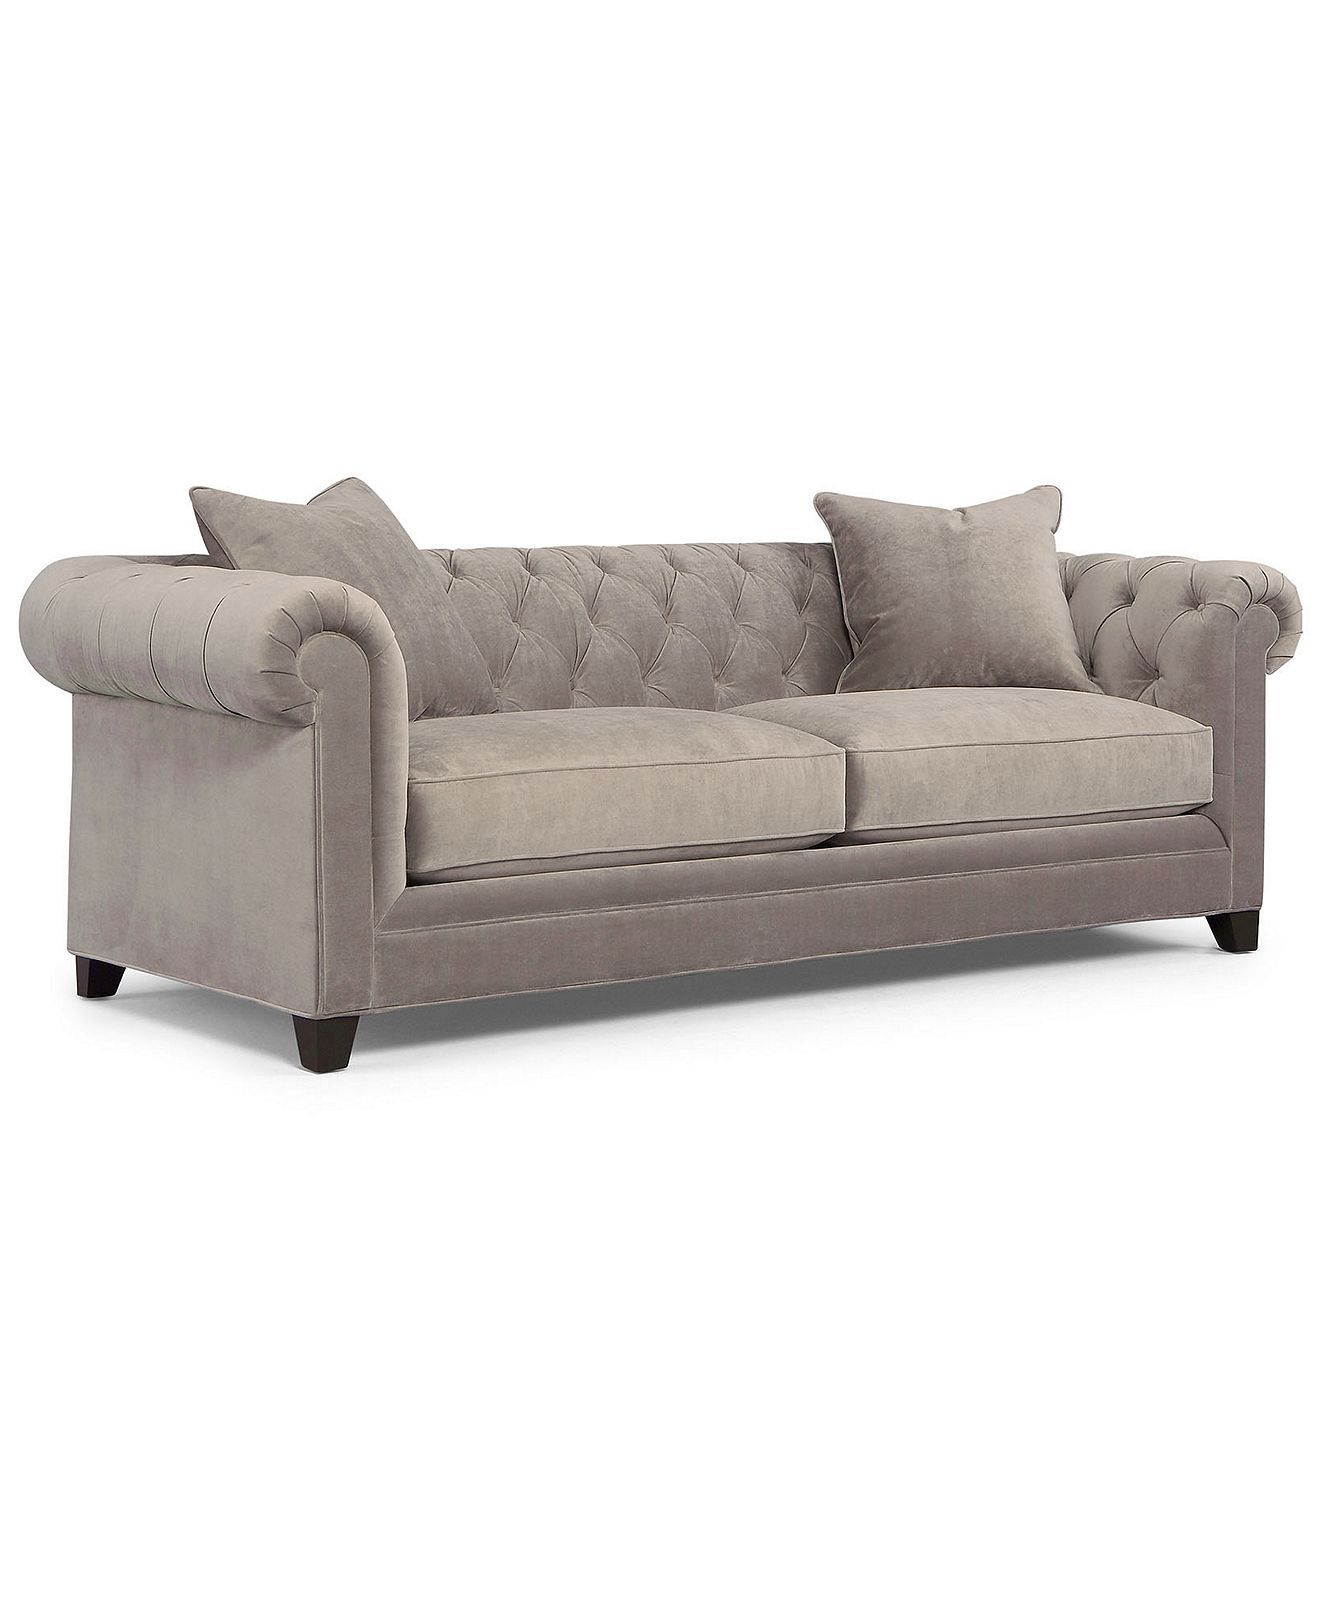 Martha Stewart Collection Saybridge Sofa. Martha Stewart Collection Saybridge Sofa   Couch sofa  Sofa